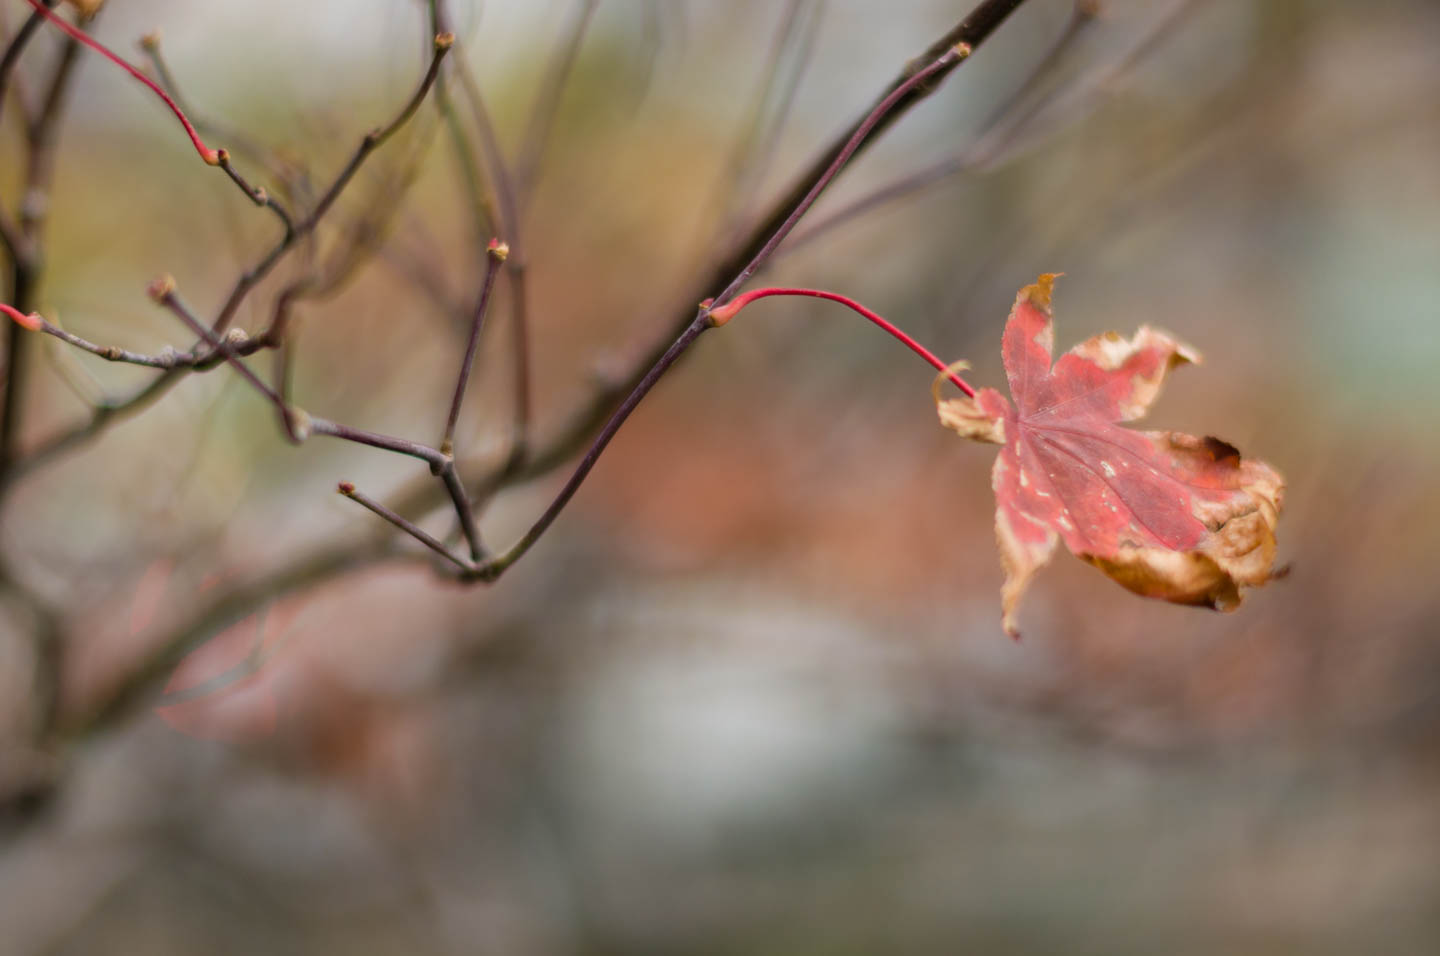 Last leaves of autumn